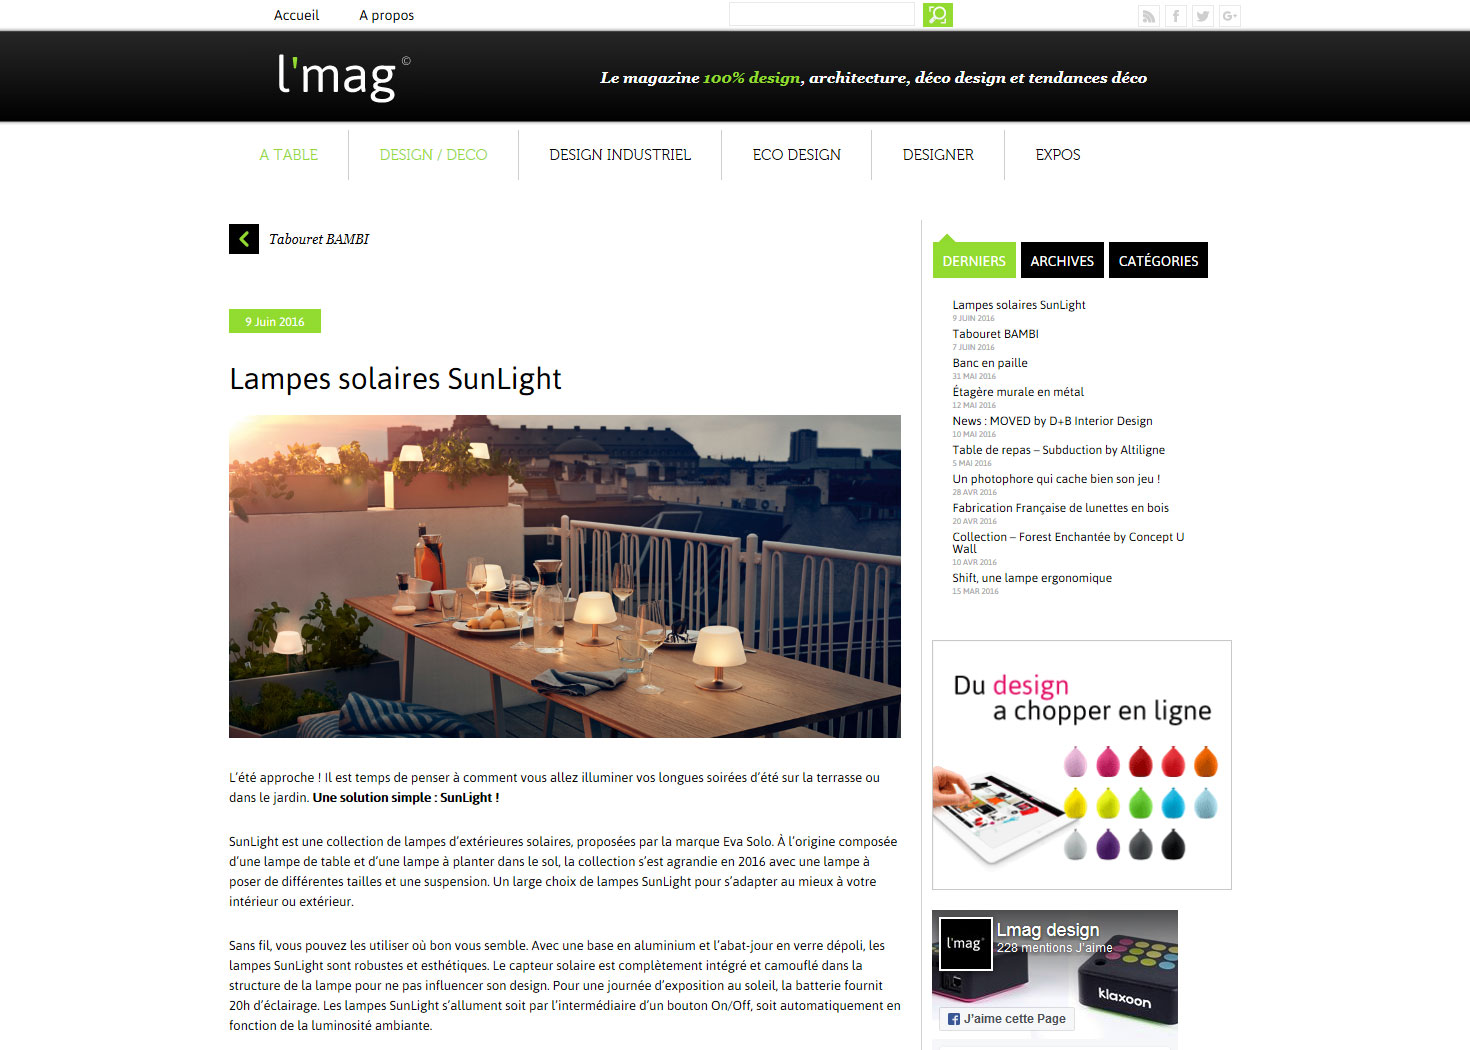 lmagdesign-page2